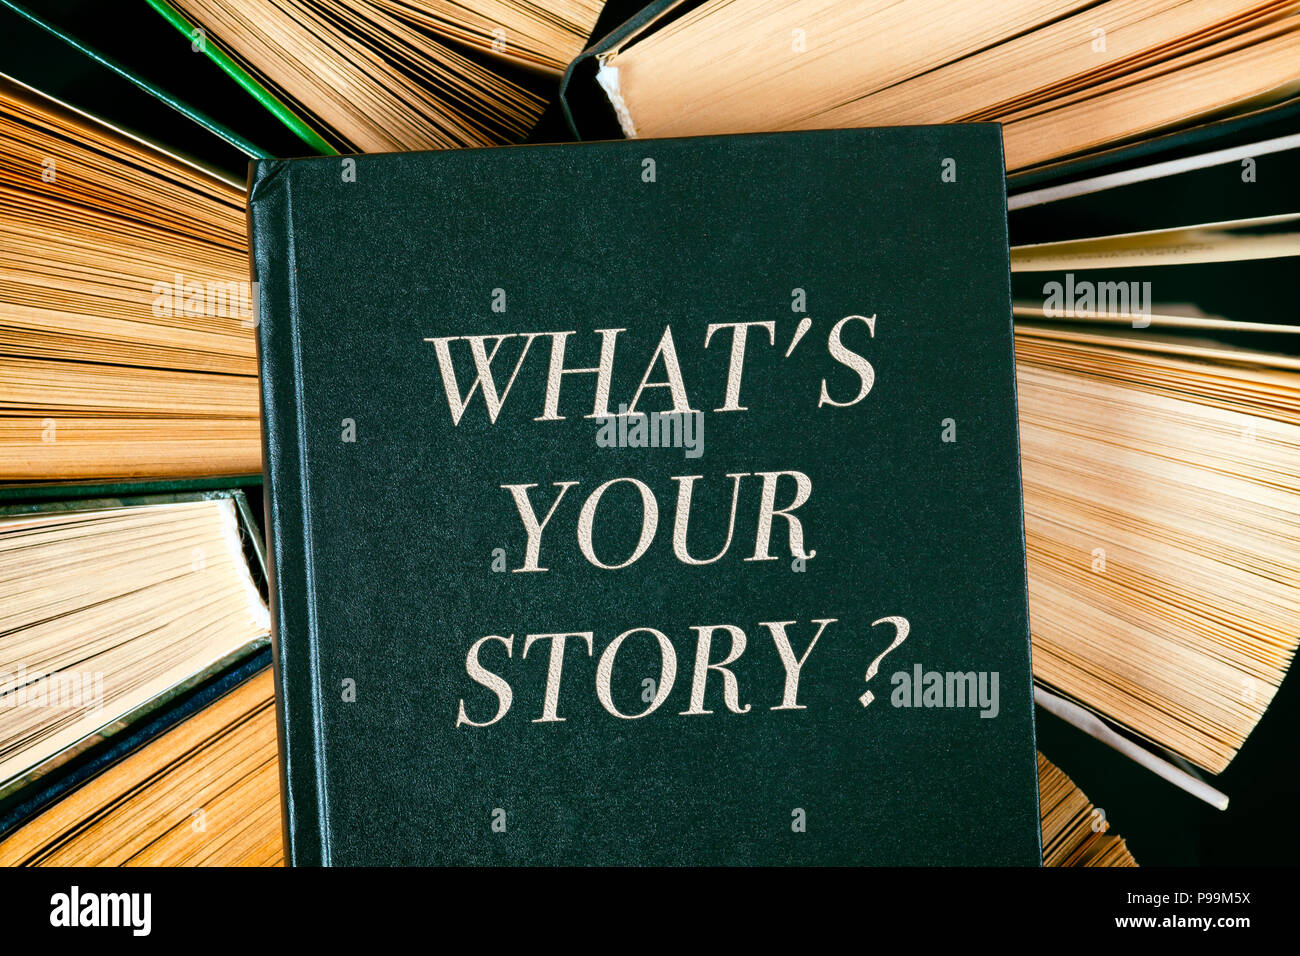 Top view of old hardcover books with book Whats your story? on top. - Stock Image